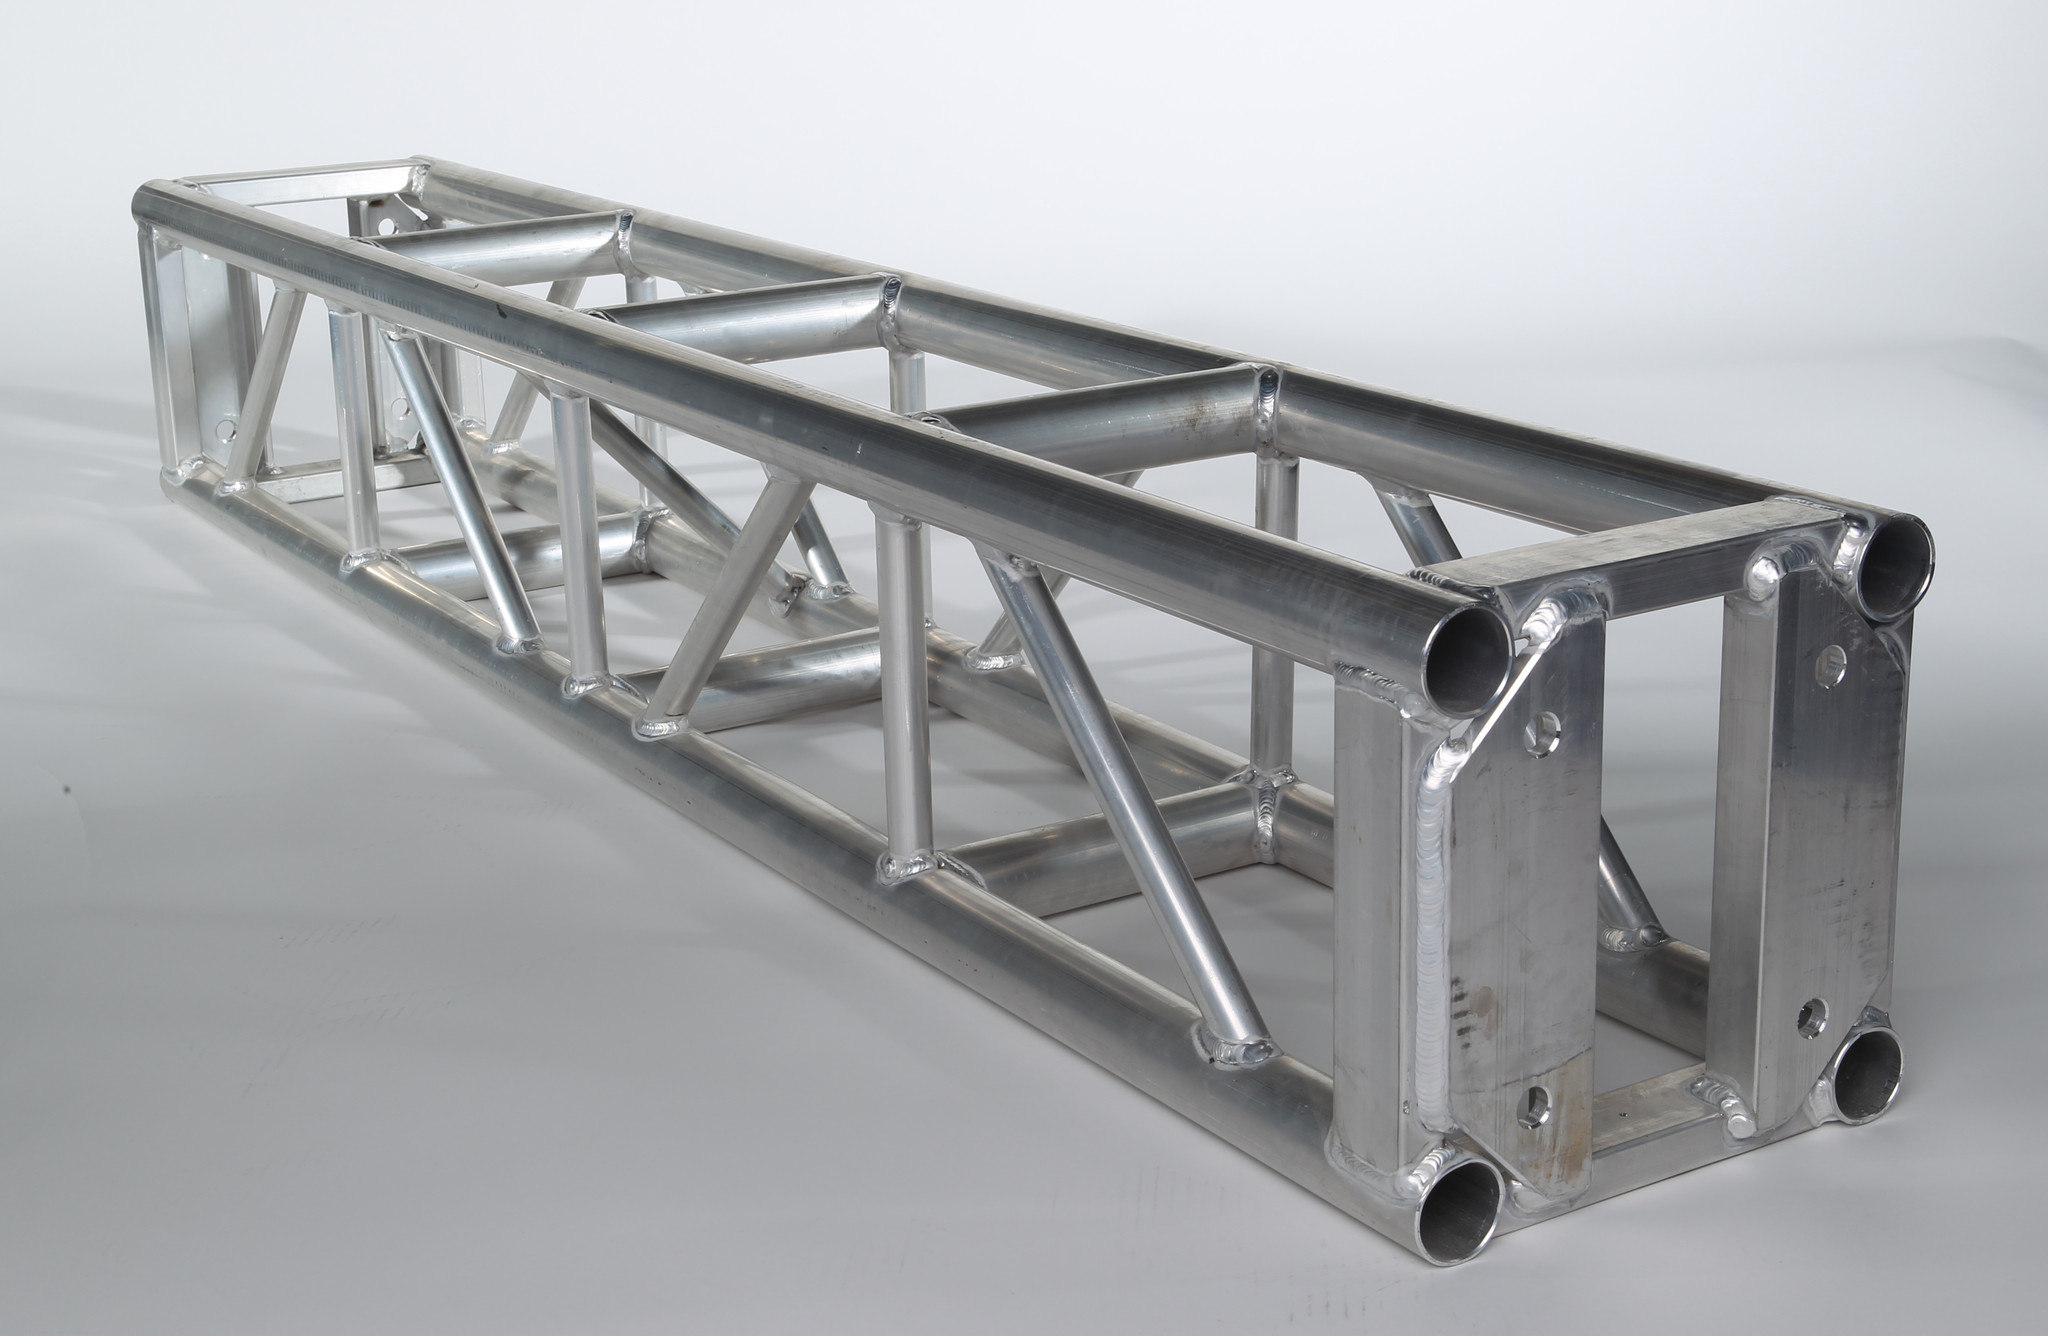 12x12 Truss Sections - 6 foot